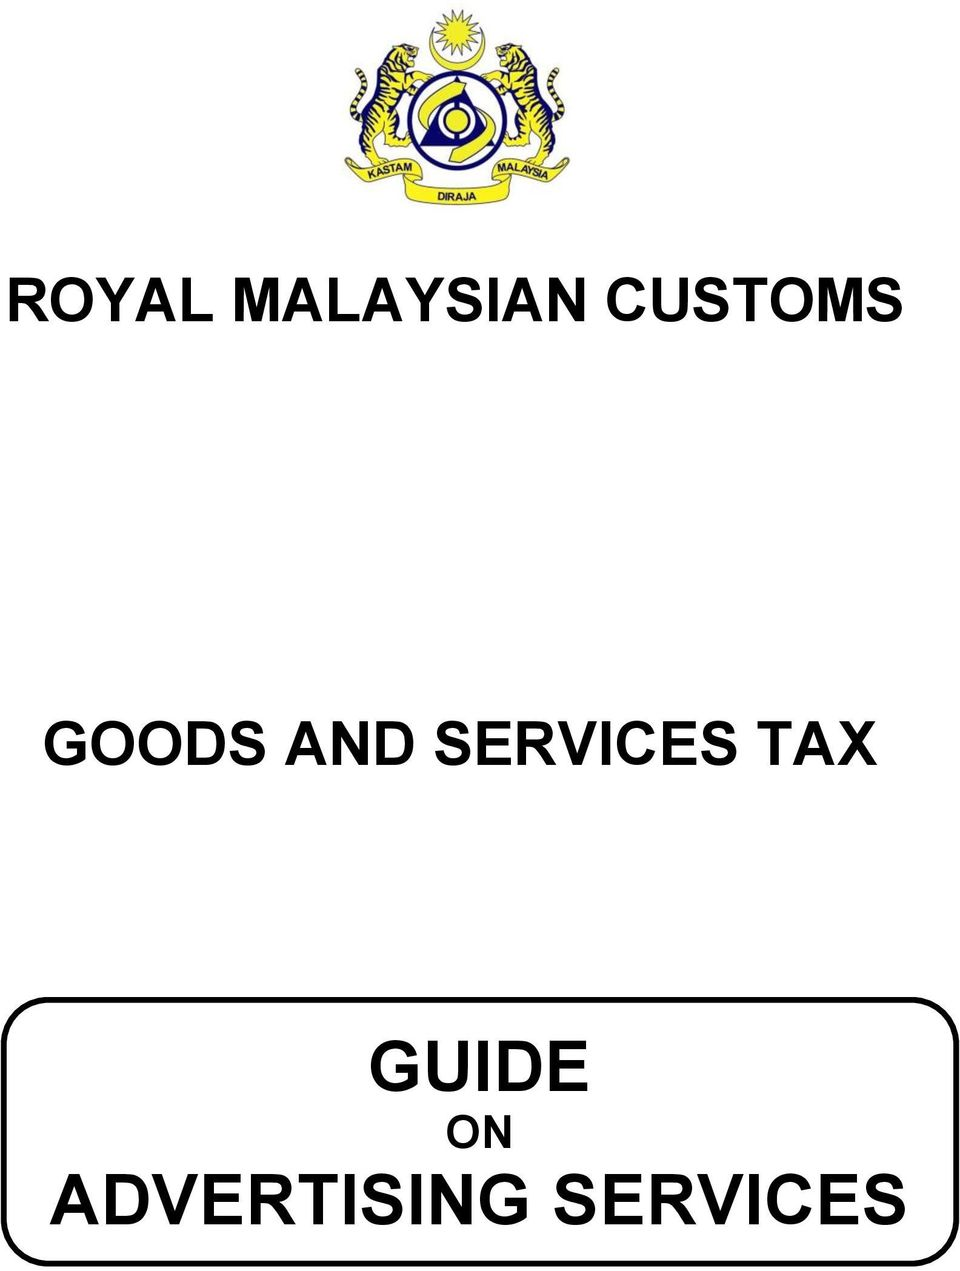 SERVICES TAX GUIDE